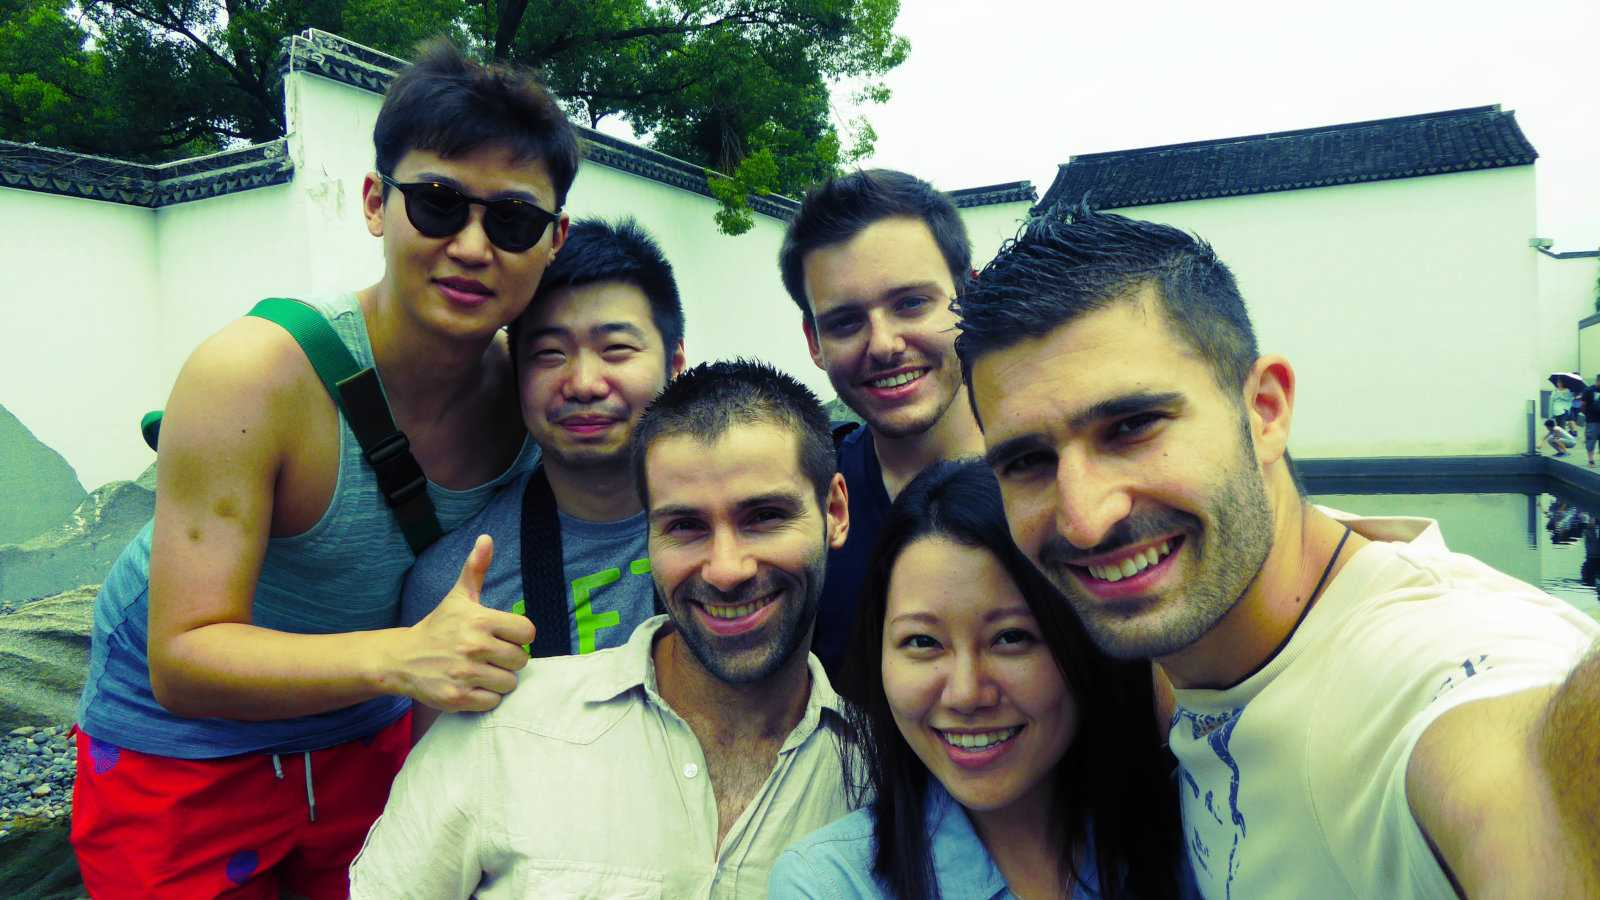 Connecting with local gays is a good way to get acquainted with the gay scene when traveling to China